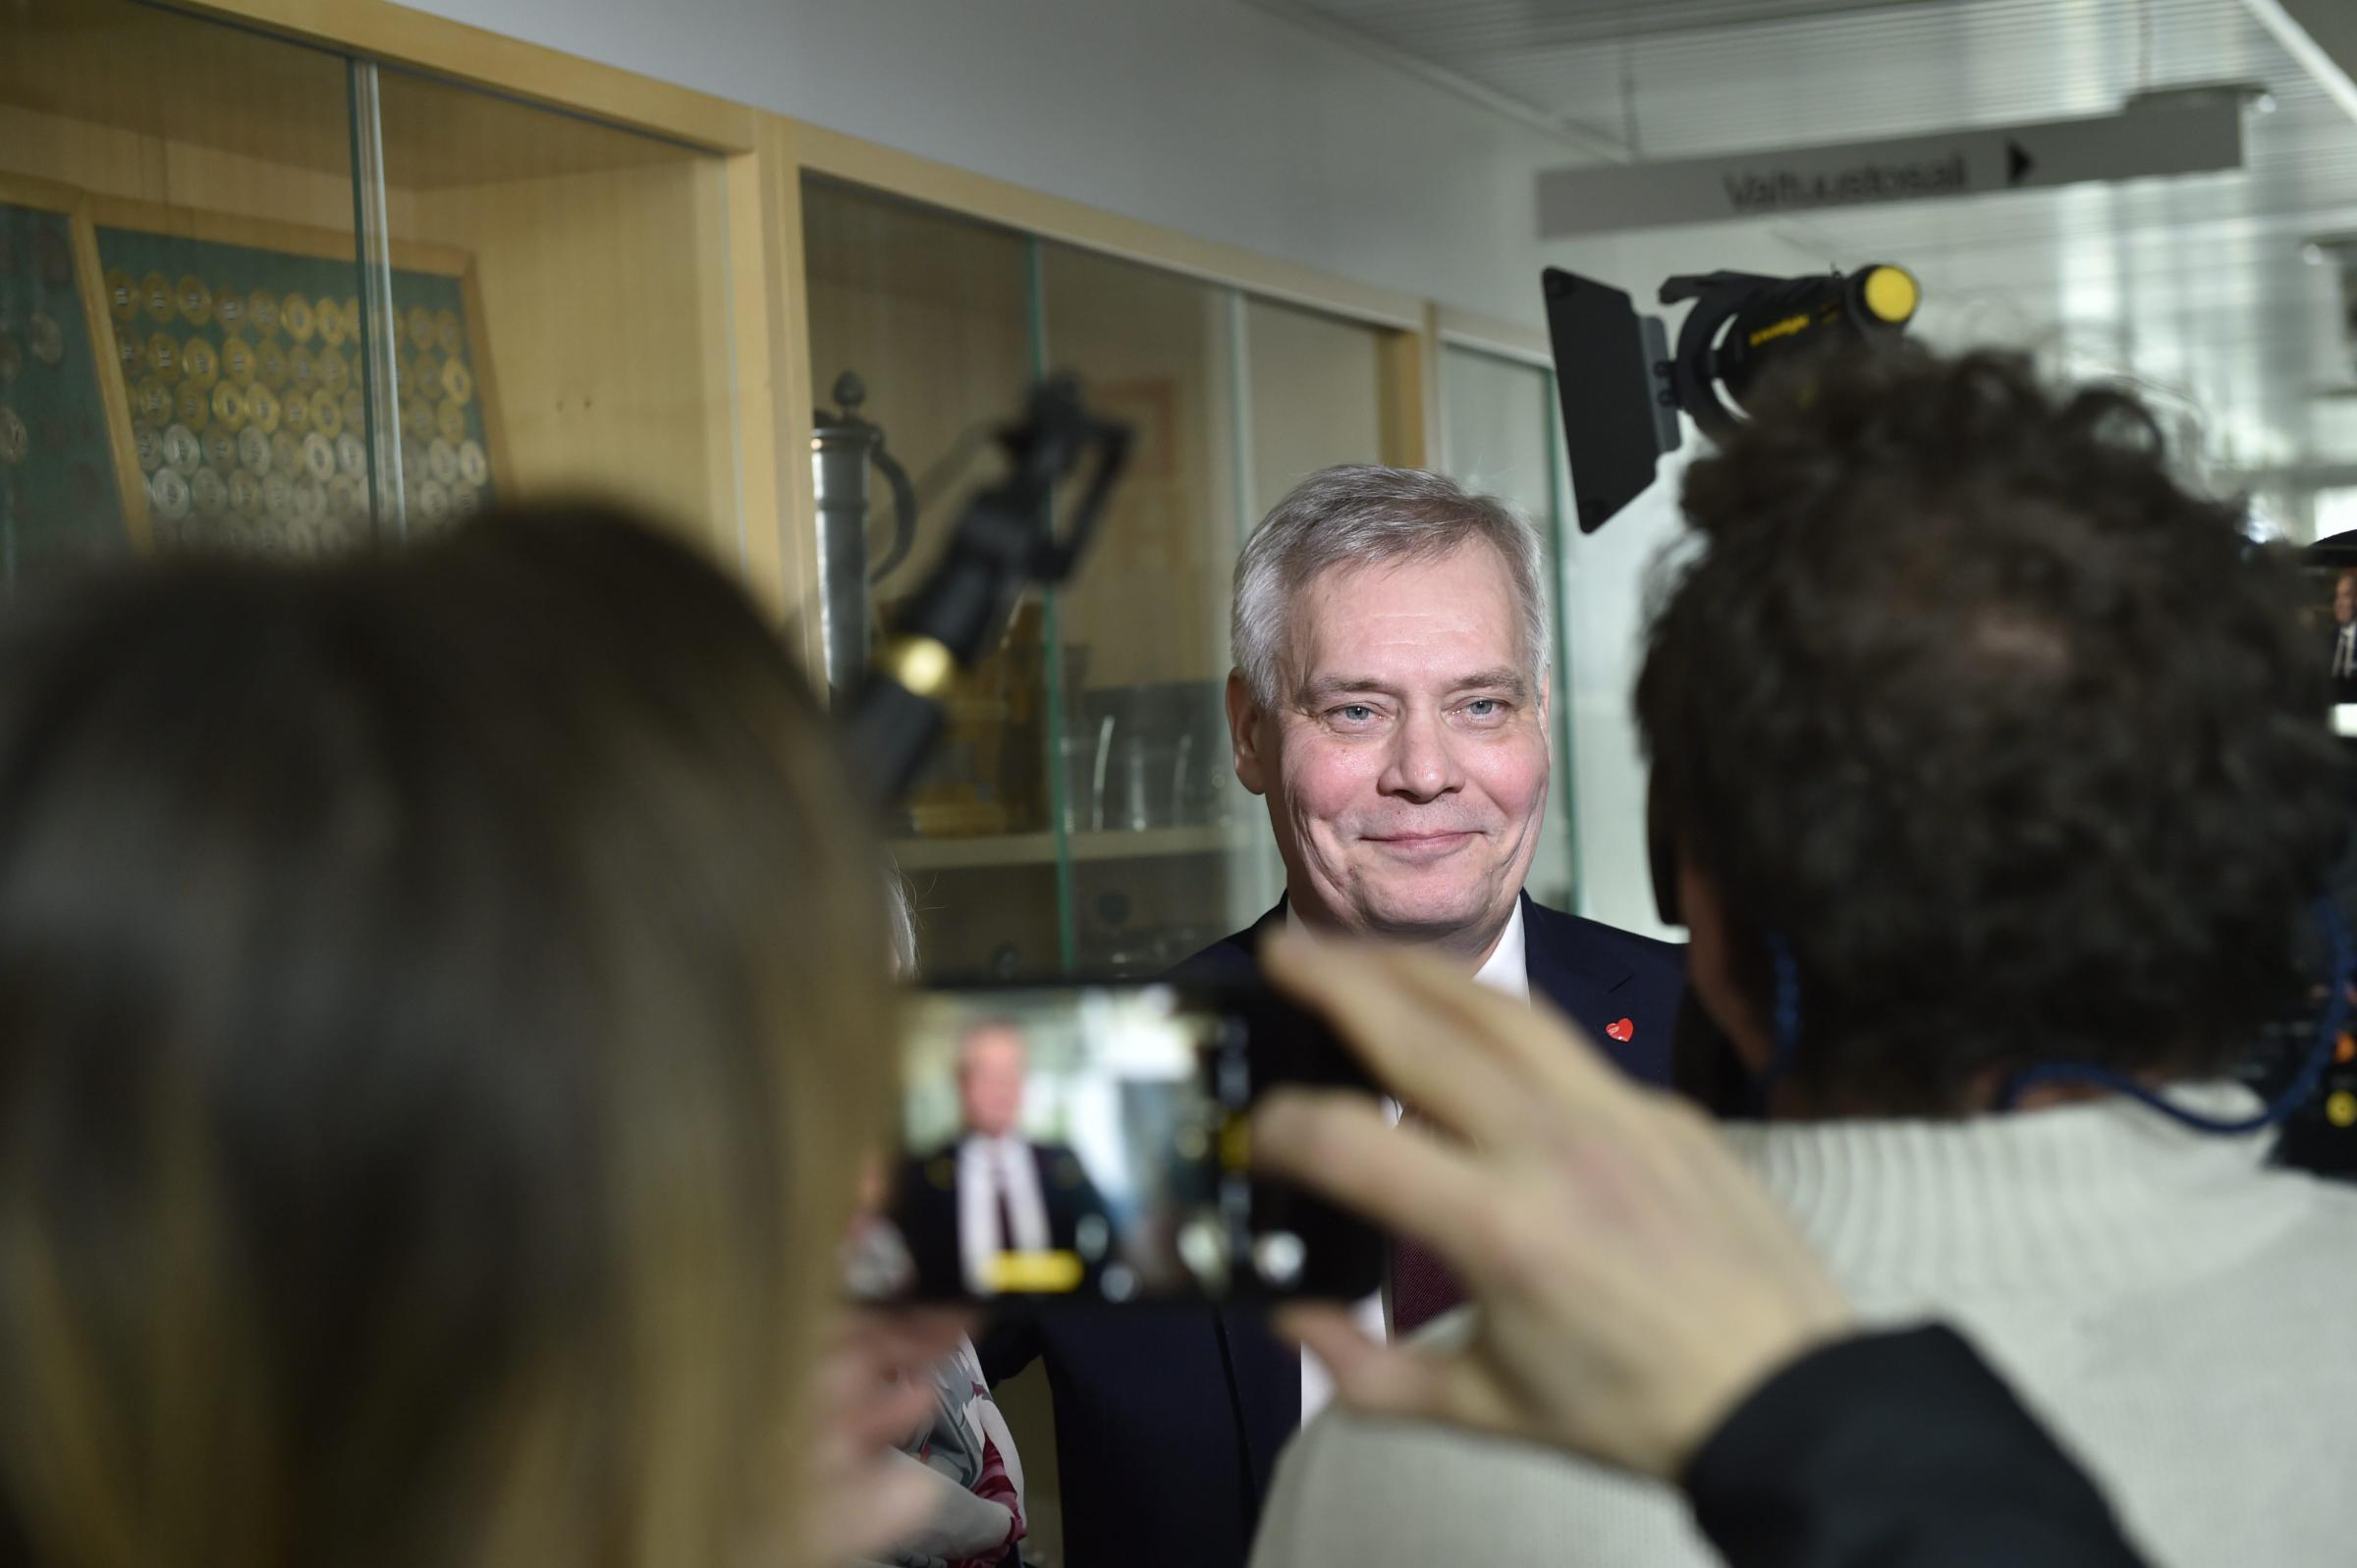 Antti Rinne, chairman of the centre-left Social Democratic Party, will be in for tough talks